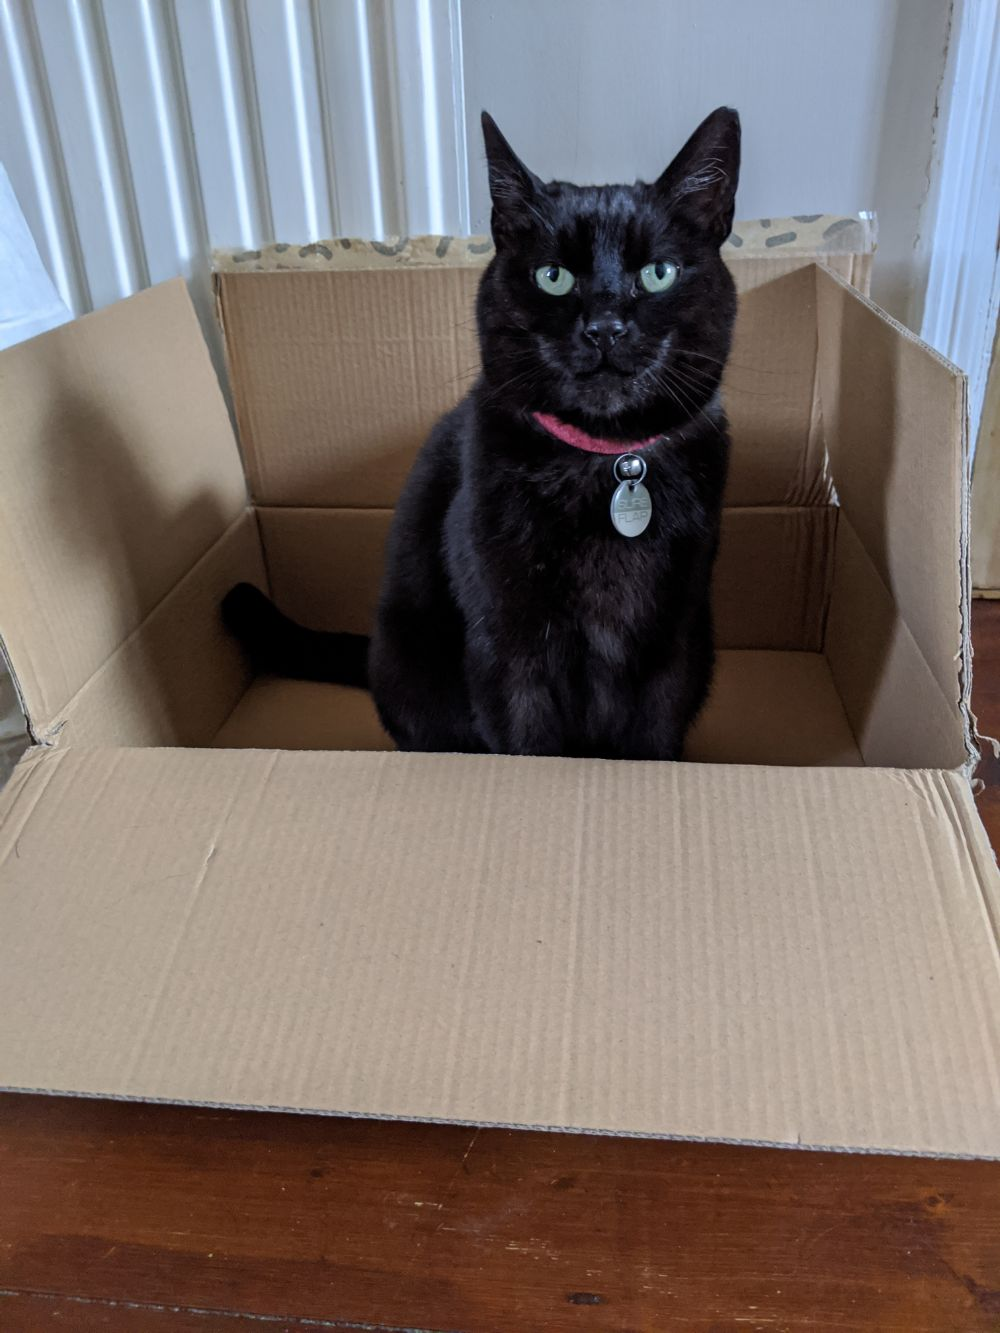 Black cat sitting in a box, looking at the camera